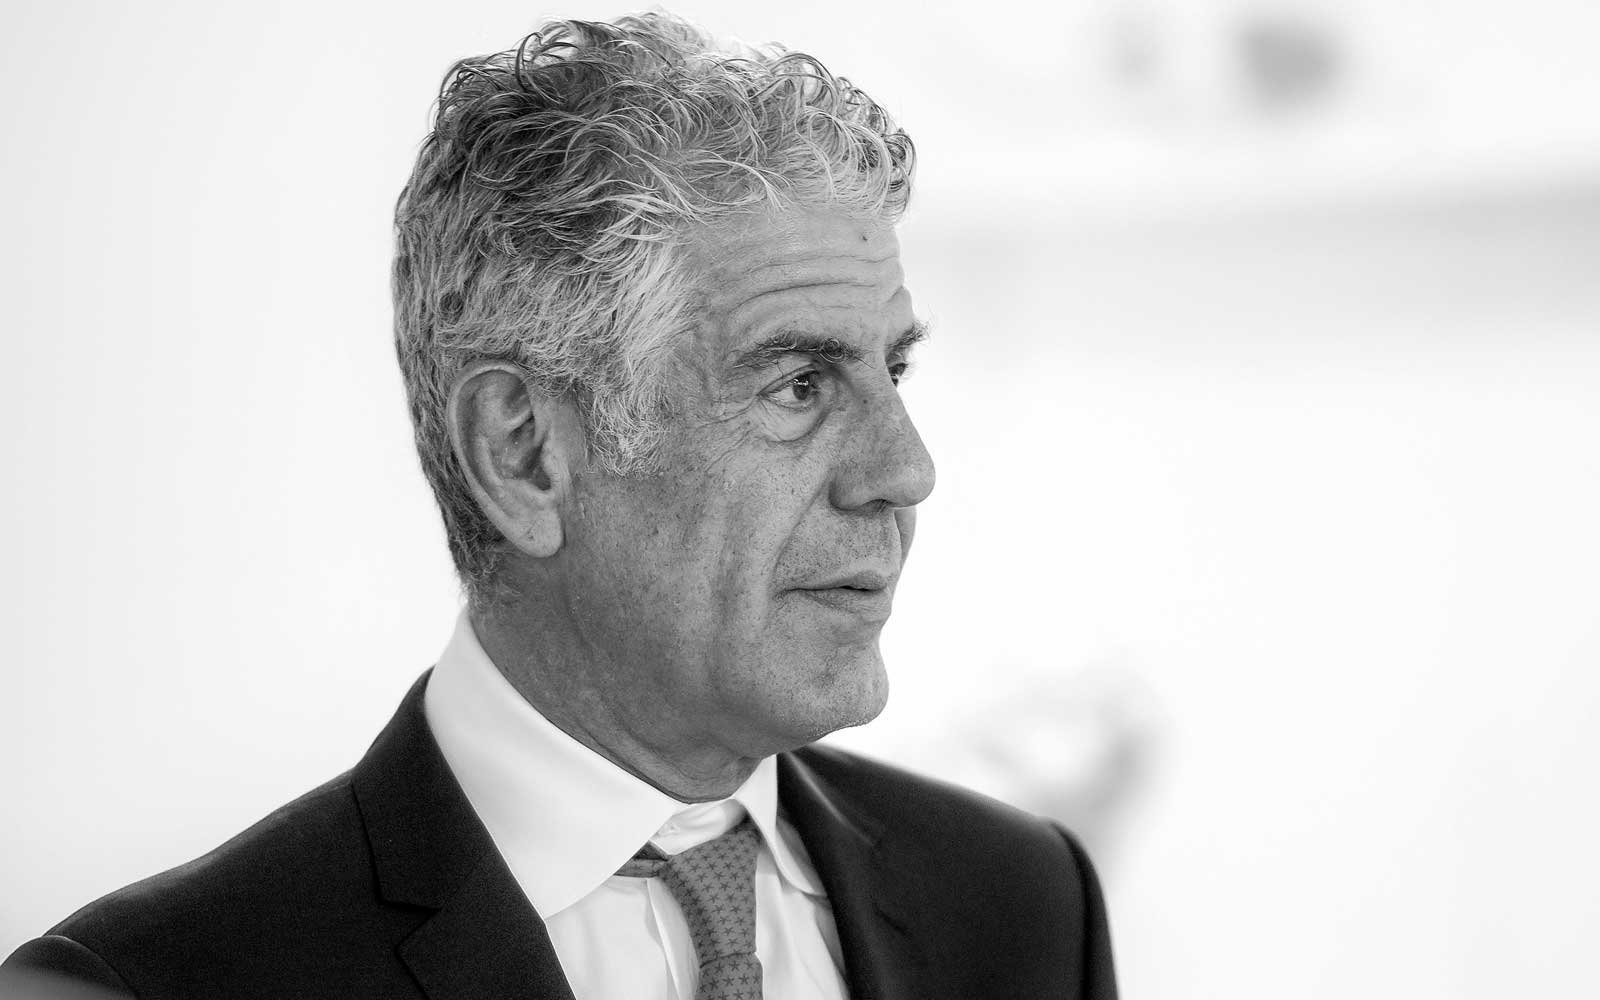 Anthony Bourdain's favorite knife sold for more than $230,000 at auction